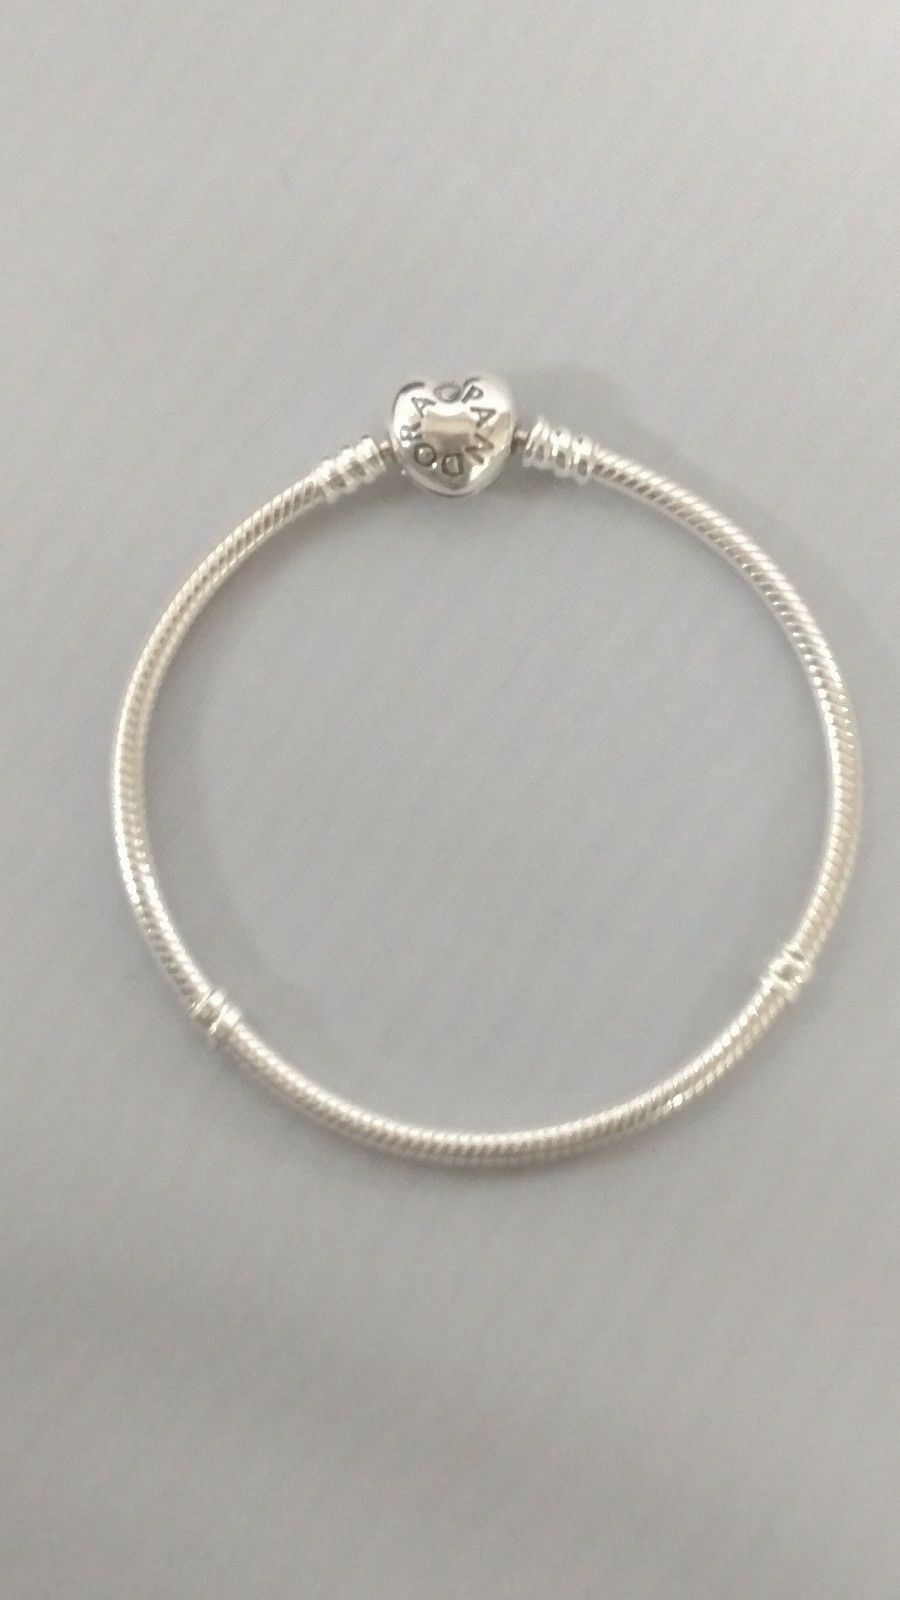 2bf3f0b91 S l1600. S l1600. Previous. PANDORA Charm Bracelet Sterling Silver With Heart  Clasp 590719 · PANDORA Charm ...